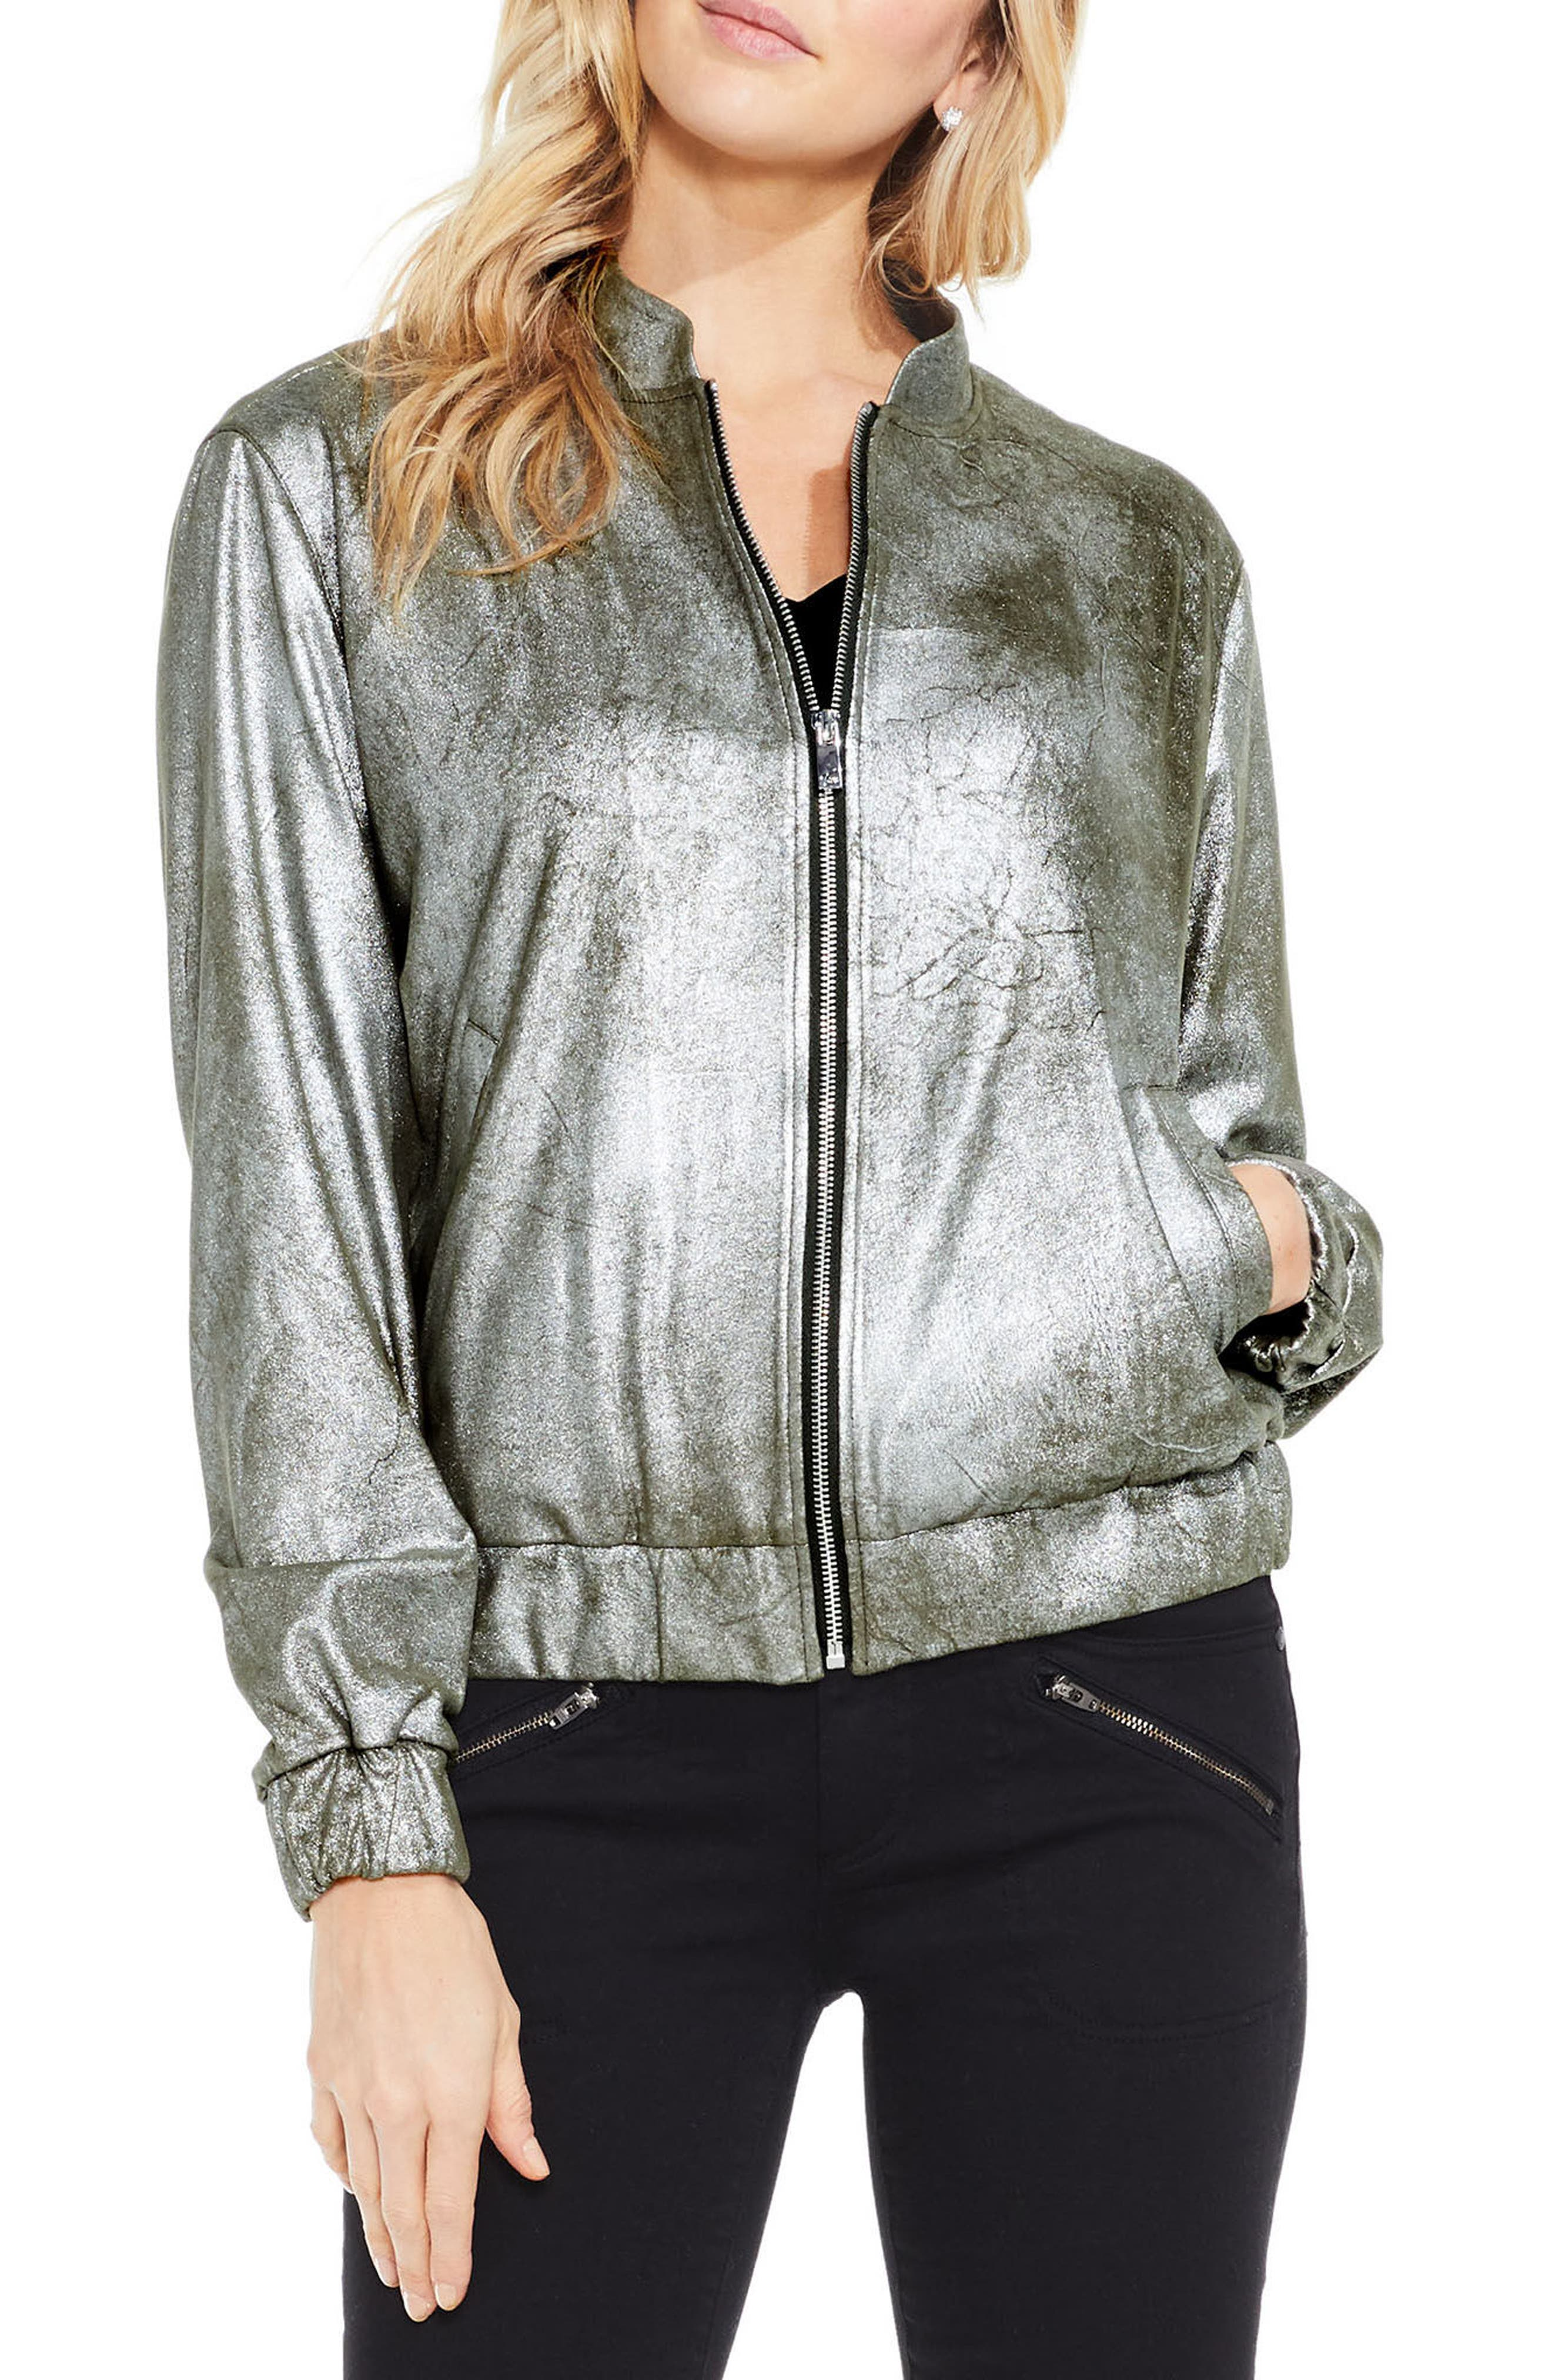 Main Image - Two by Vince Camuto Foiled Ponte Knit Bomber Jacket